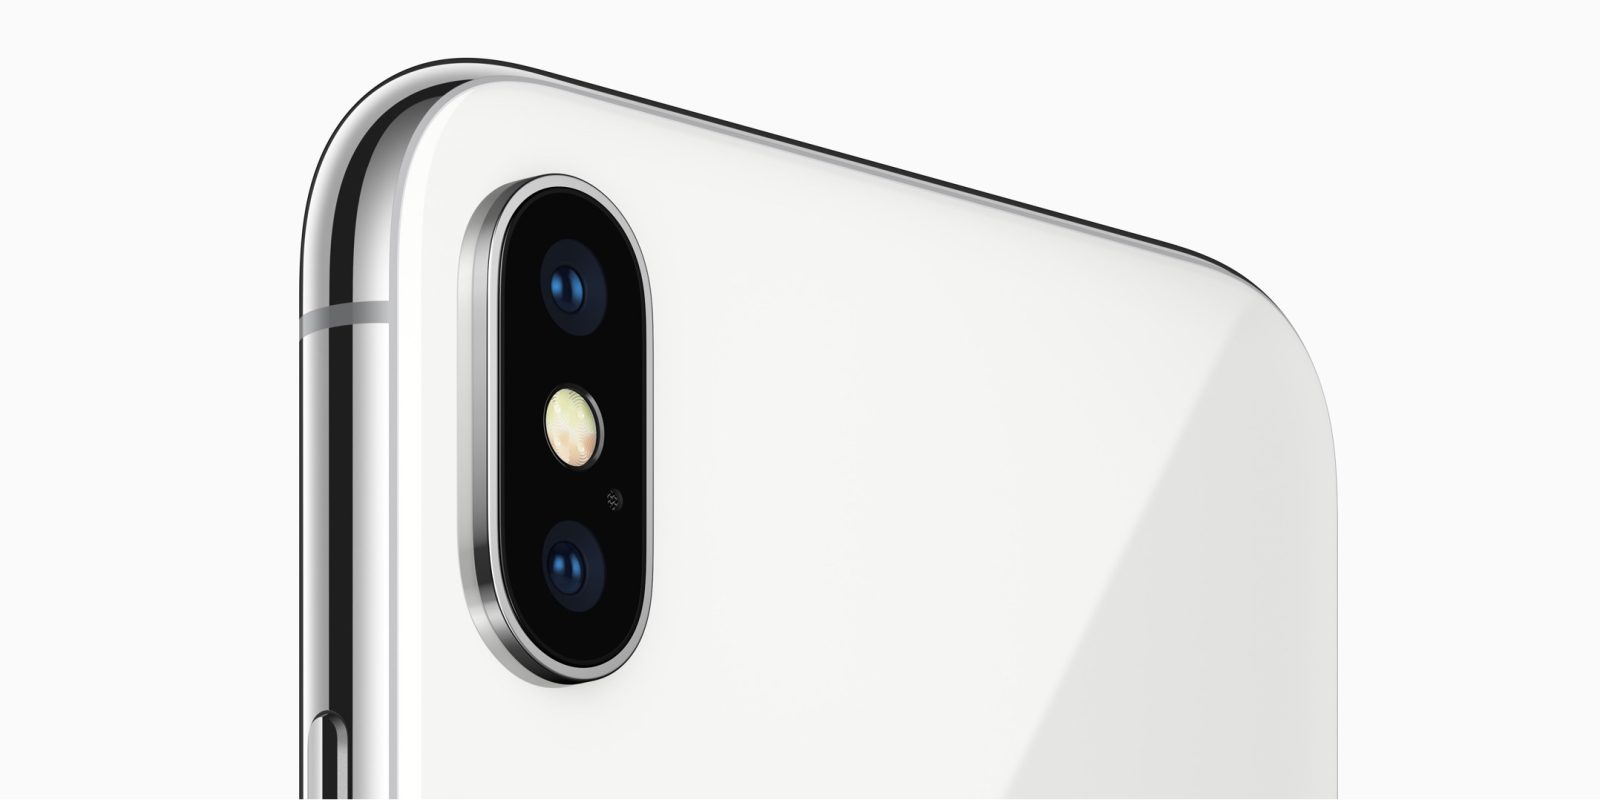 Iphone How To Customize Camera Settings To Shoot 4k Video 9to5mac